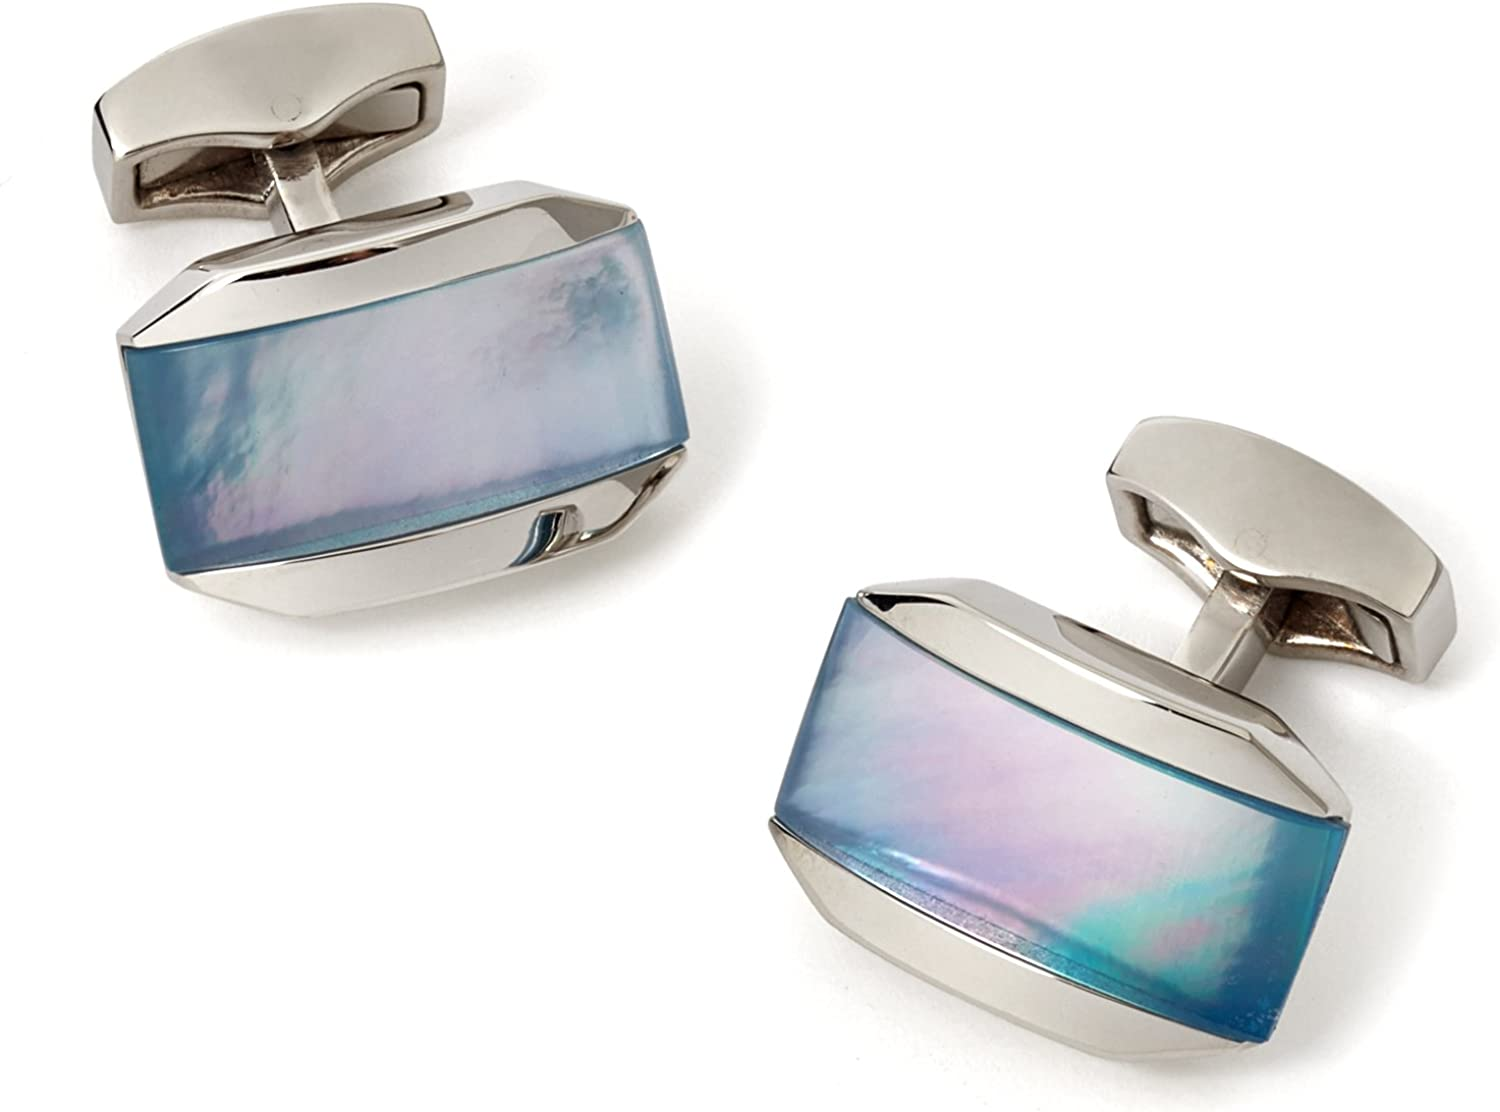 Tateossian Moonlight Cufflinks with Mother of Pearl Combined with a Cabochan of Quartz in a Rhodium Silver Tonneau Case